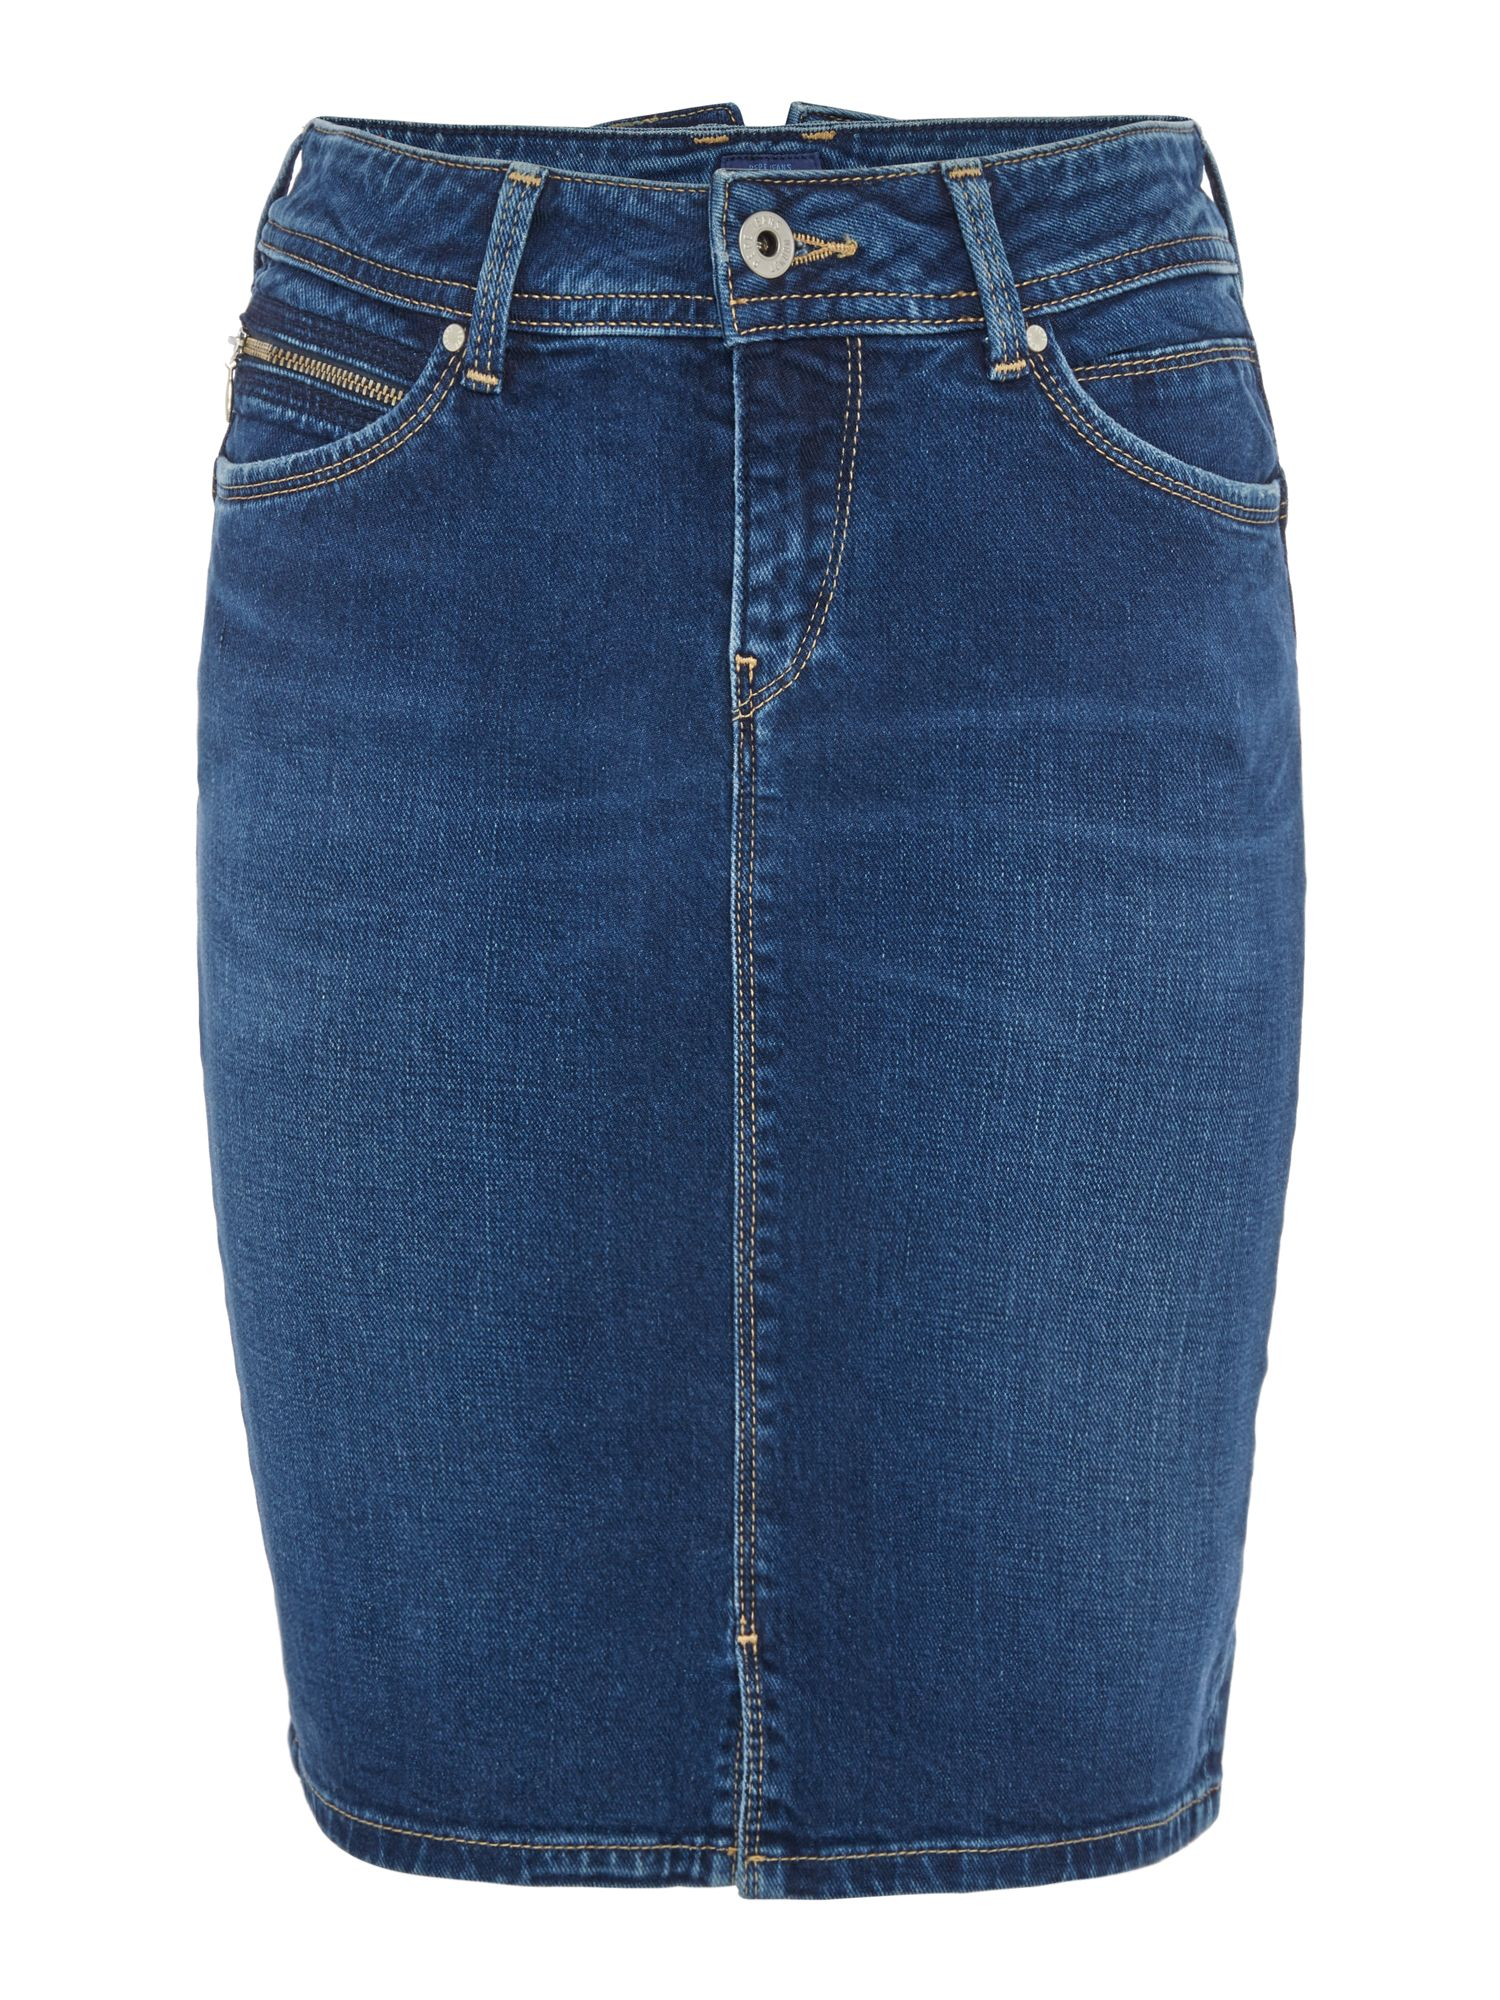 Pepe Jeans Pepe Jeans Skirts, Blue